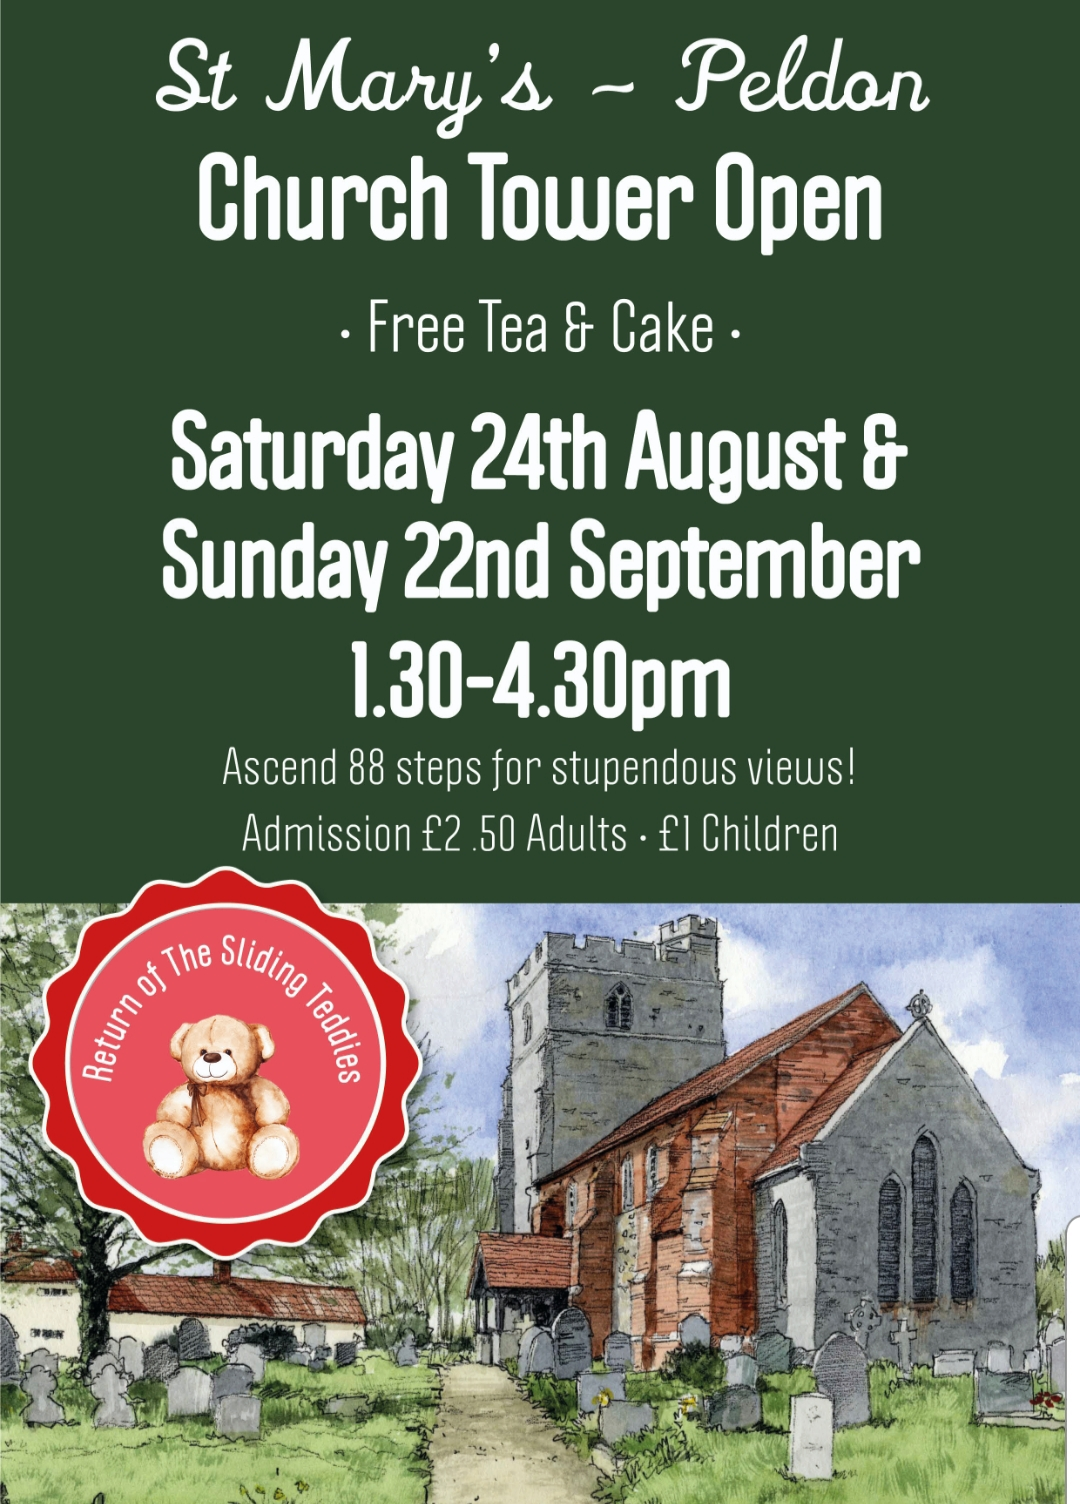 St Mary's Peldon Church Tower Open Day